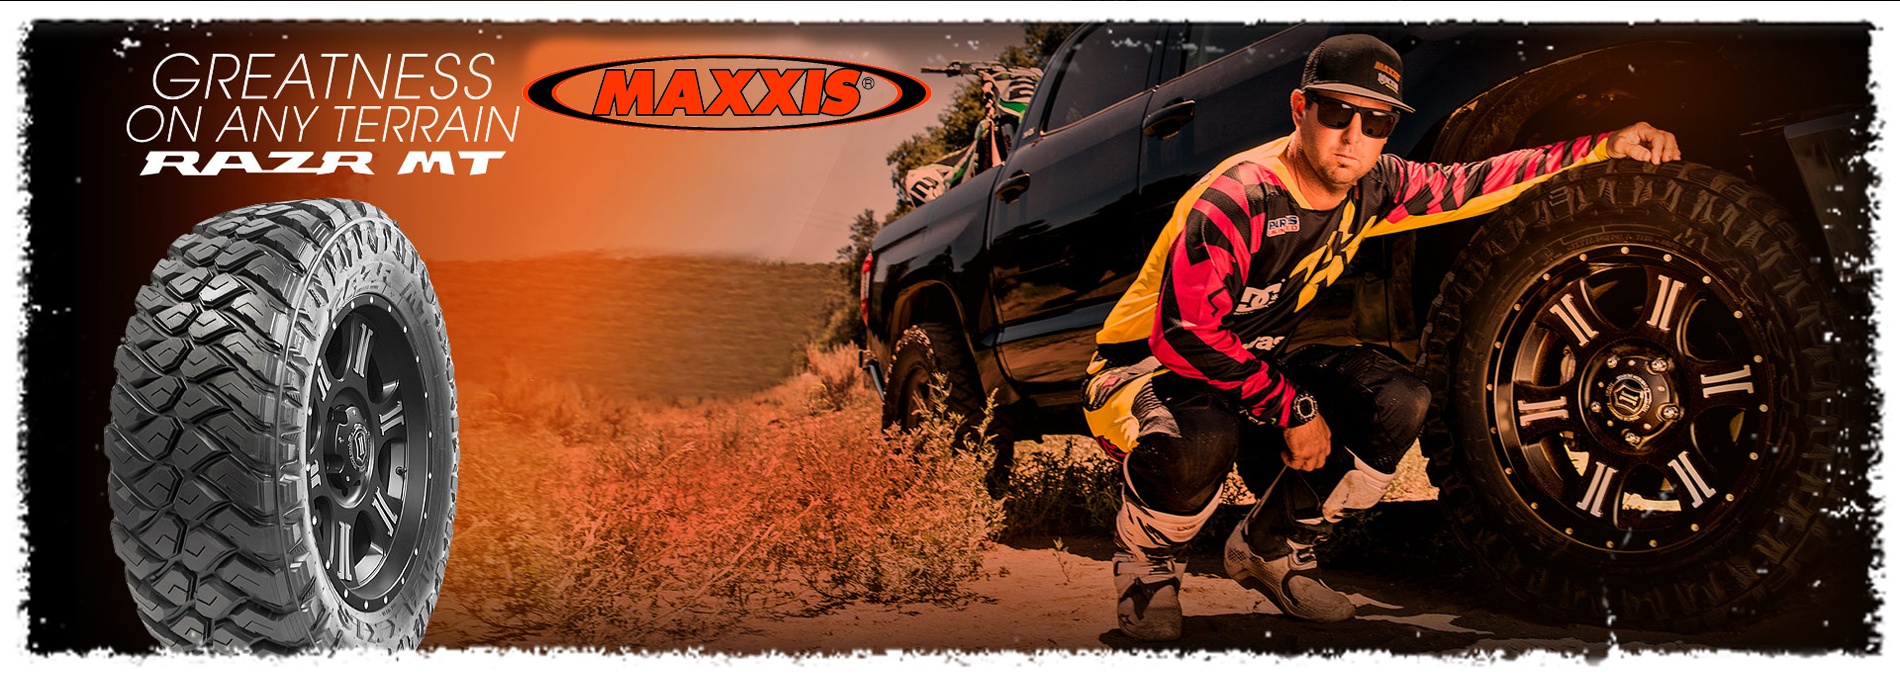 2018_01_17_Maxxis_Tires_01